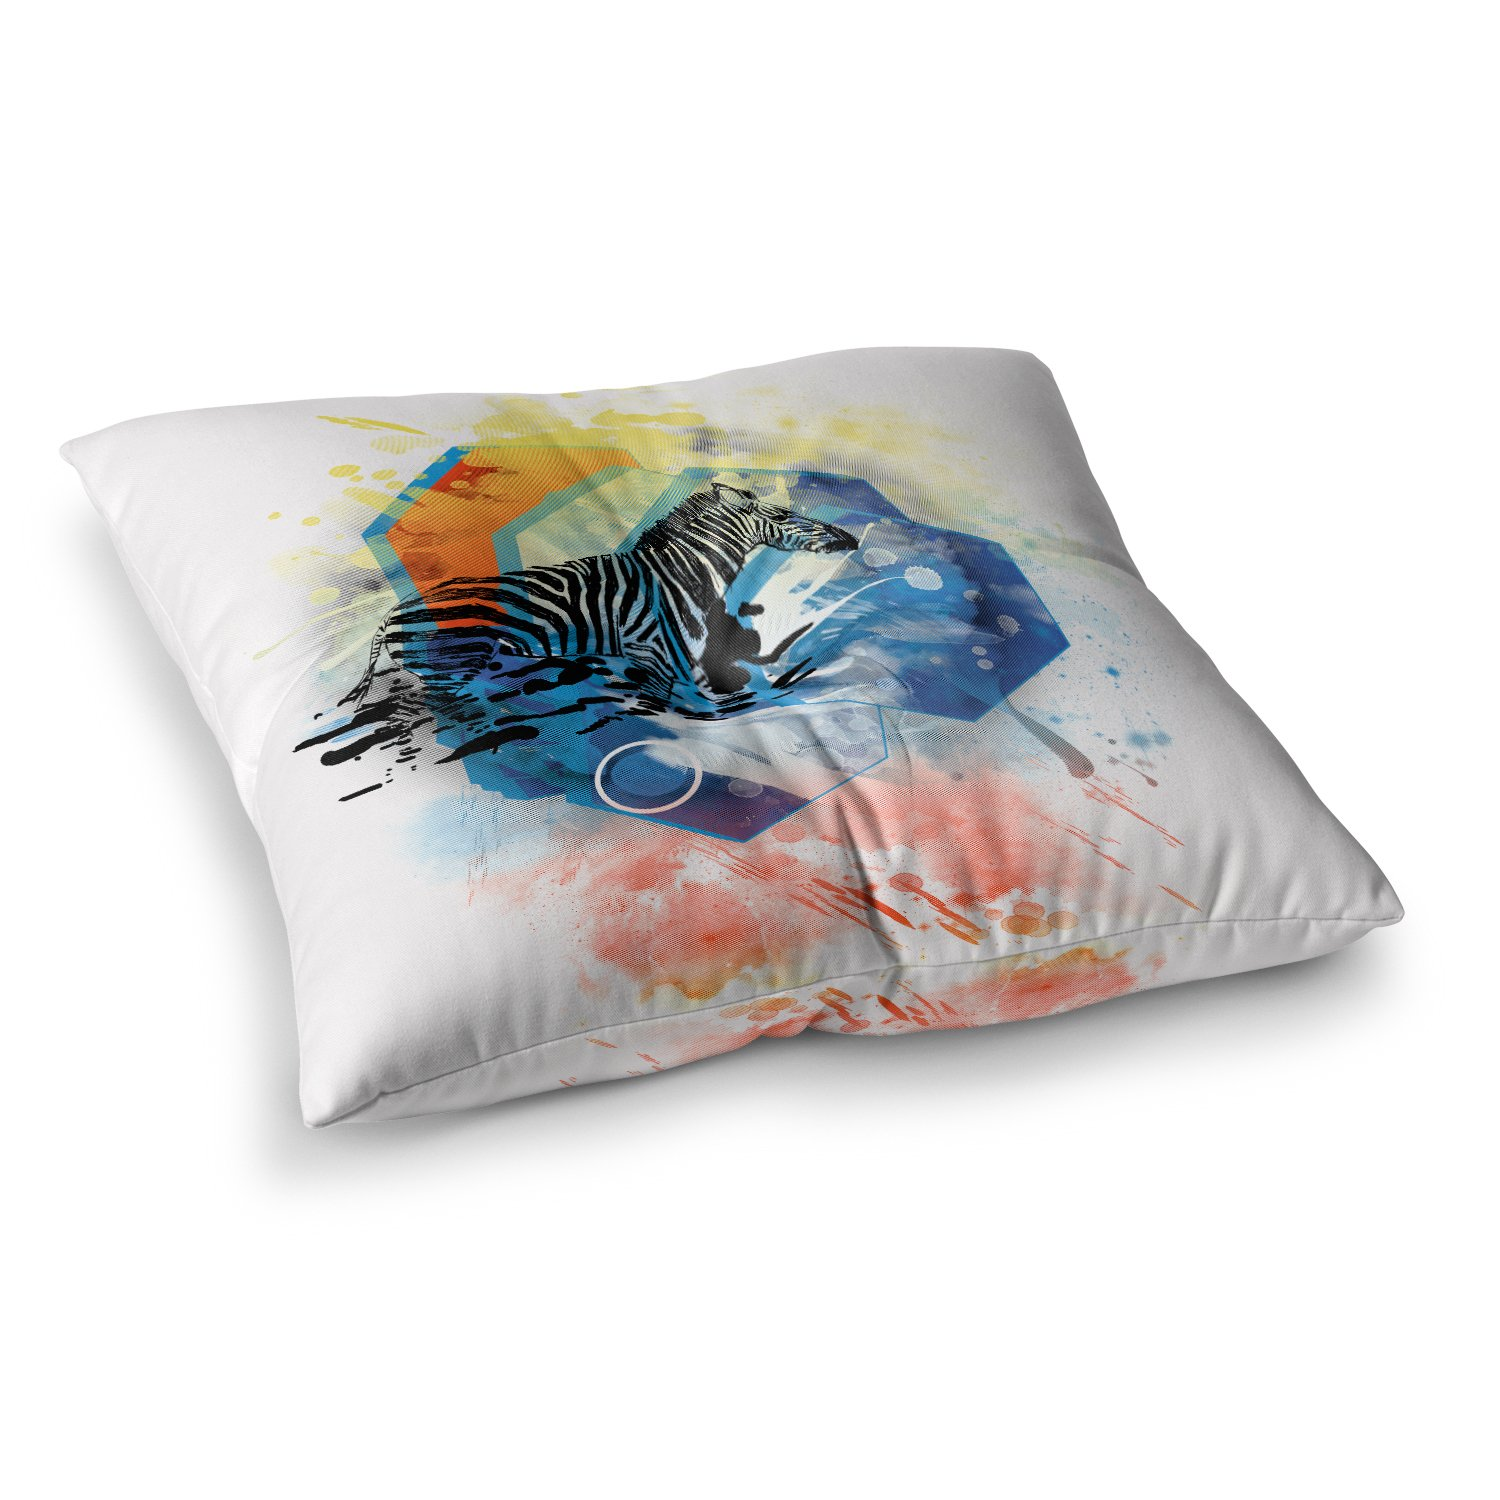 Kess InHouse Frederic Levy-Hadida Walk Off The Colors Multicolor Zebra 23 x 23 Square Floor Pillow